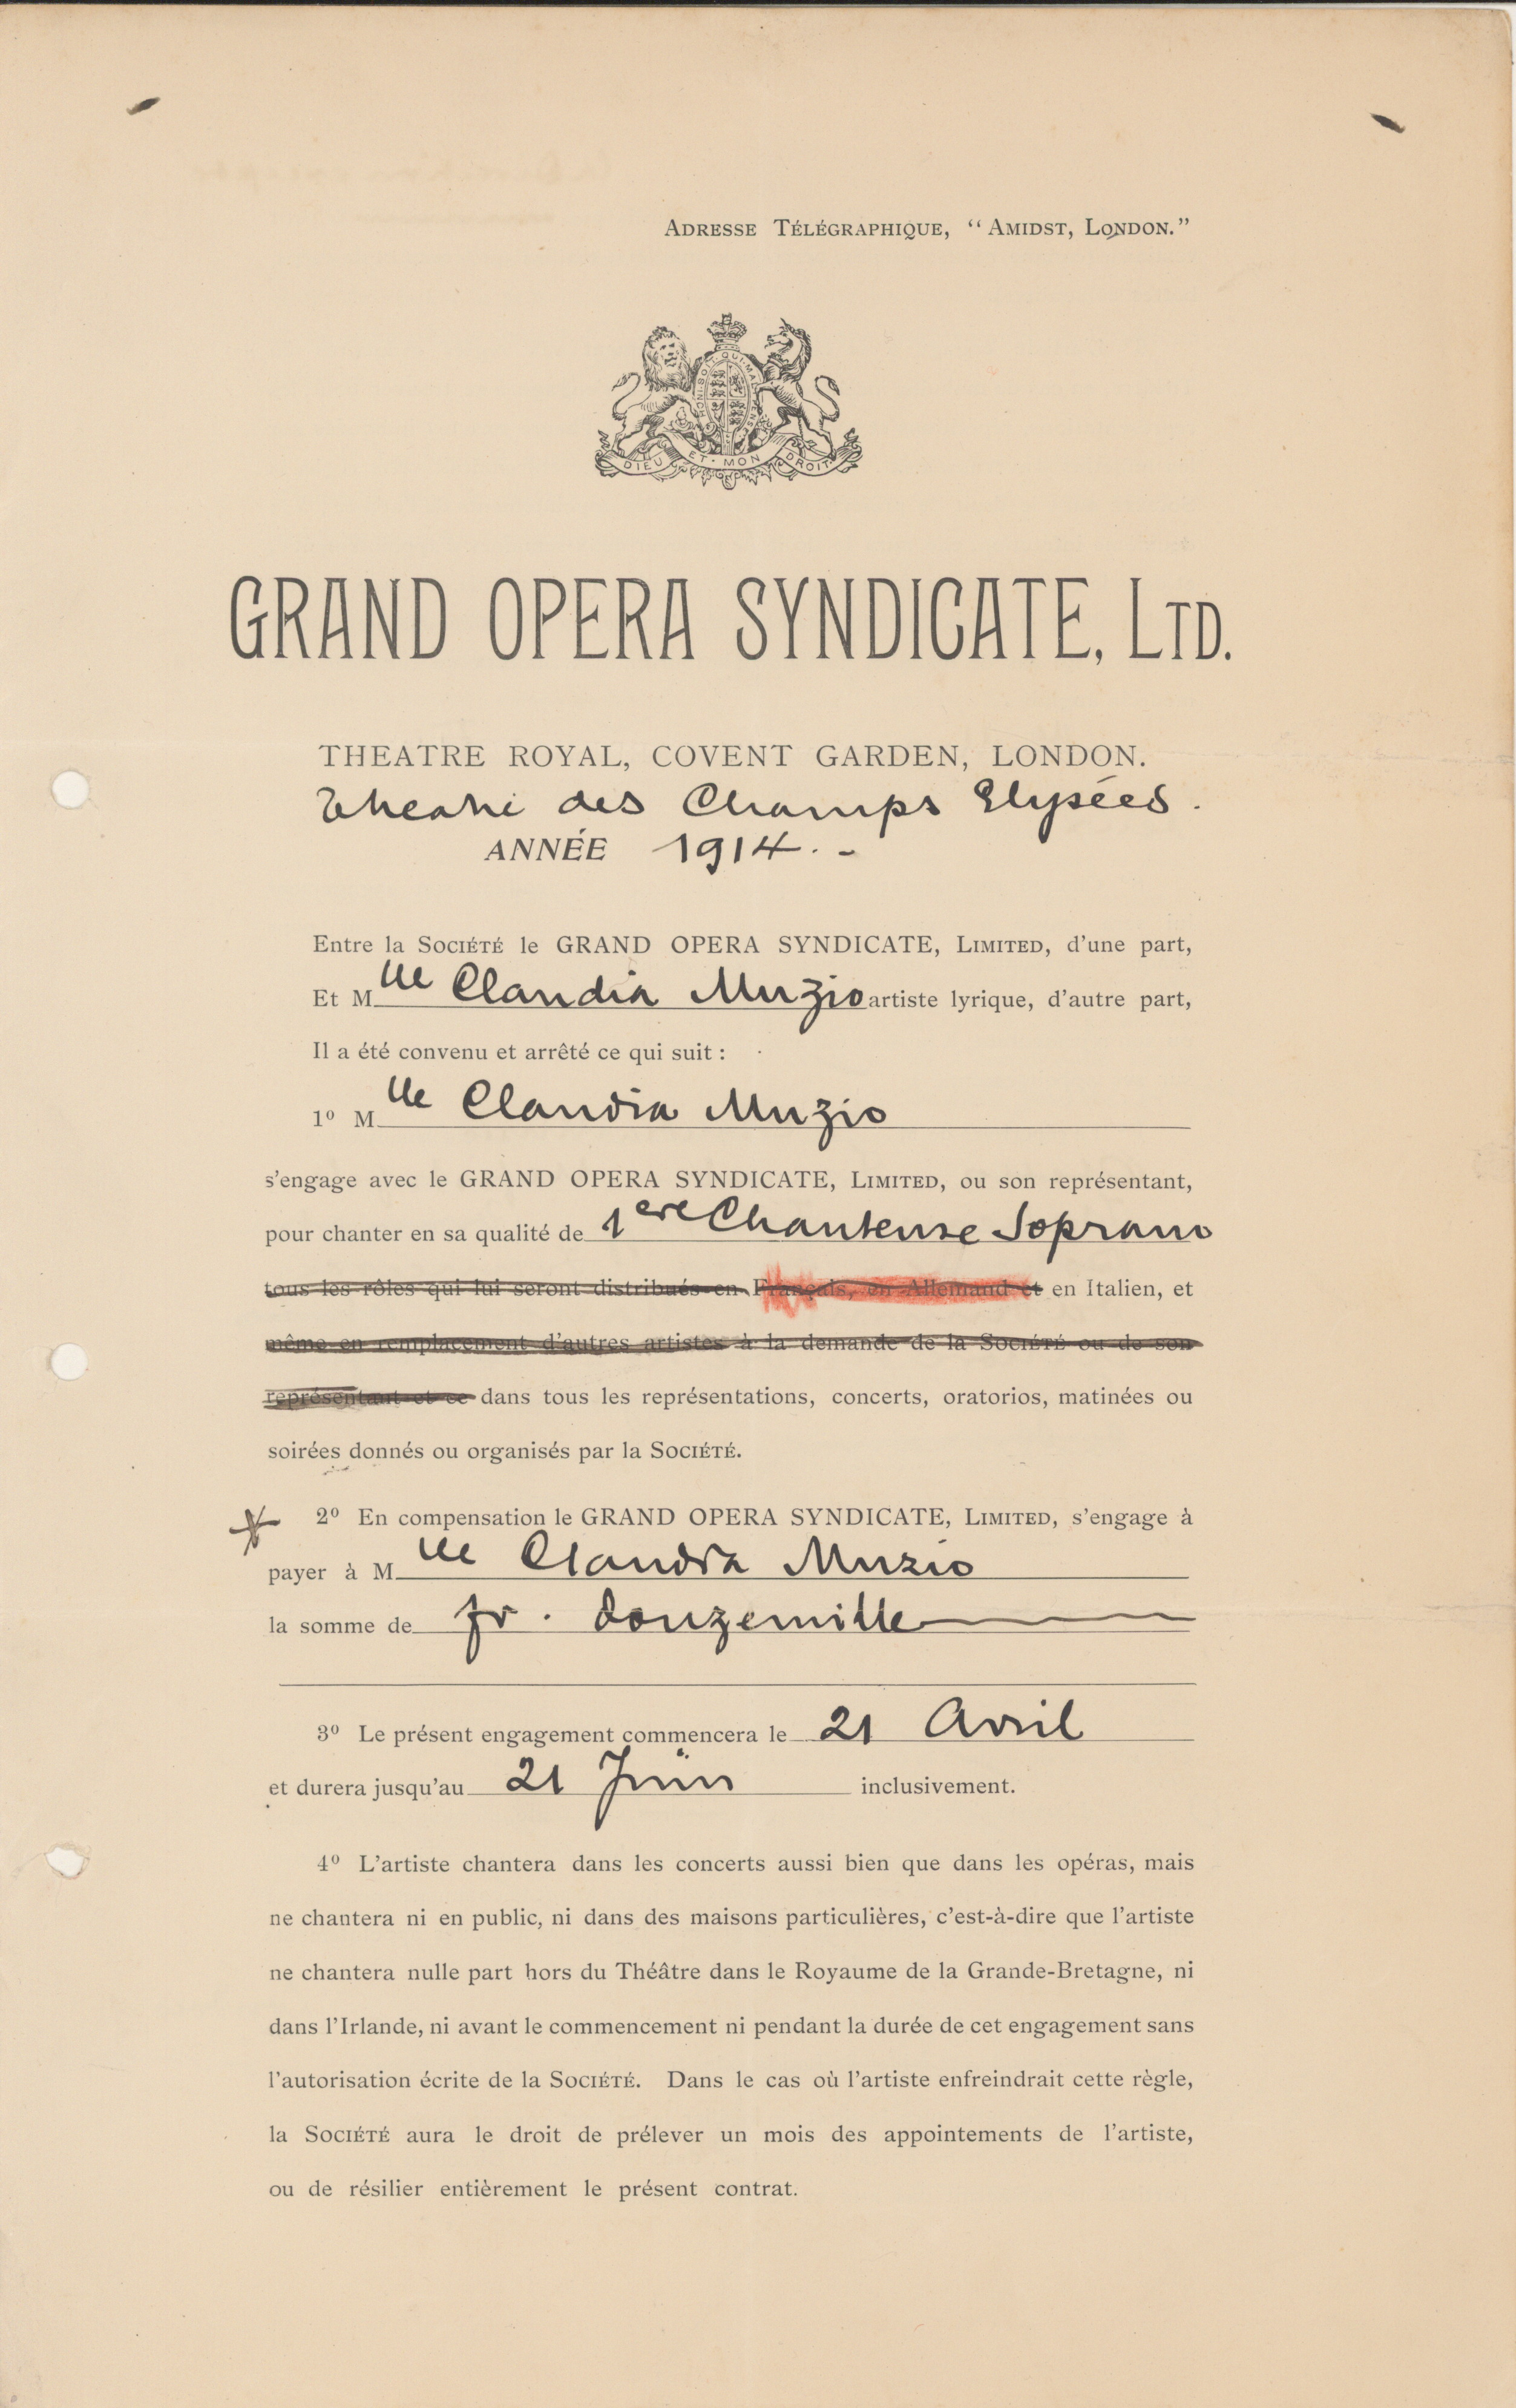 Muzio, Claudia - Contract With Grand Opera Syndicate, LTD. - (1820)